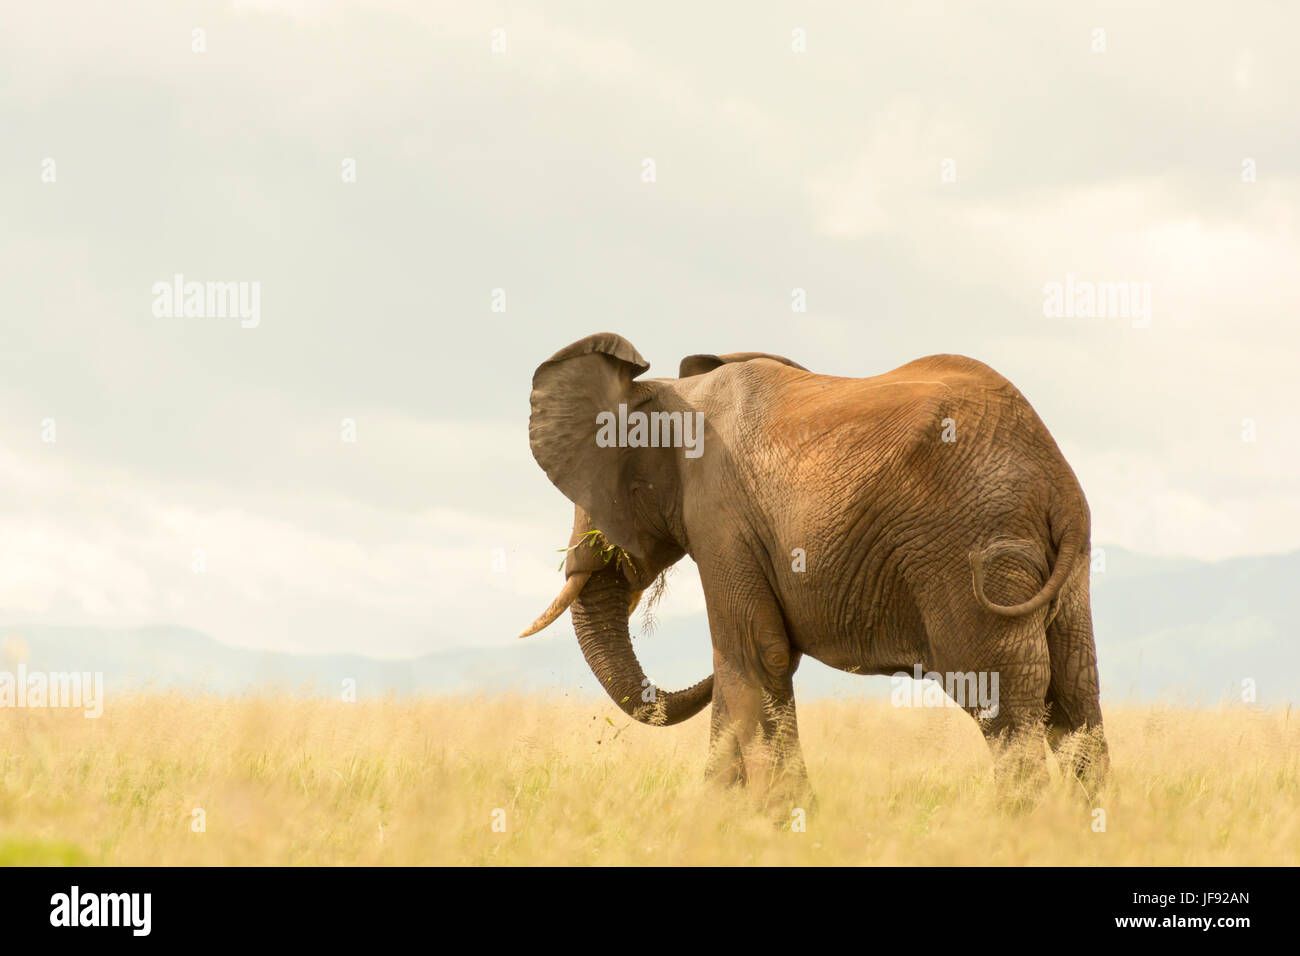 African elephant looking off into the distance in Tarangire National Park, Tanzania. Eating grass in field of soft, - Stock Image